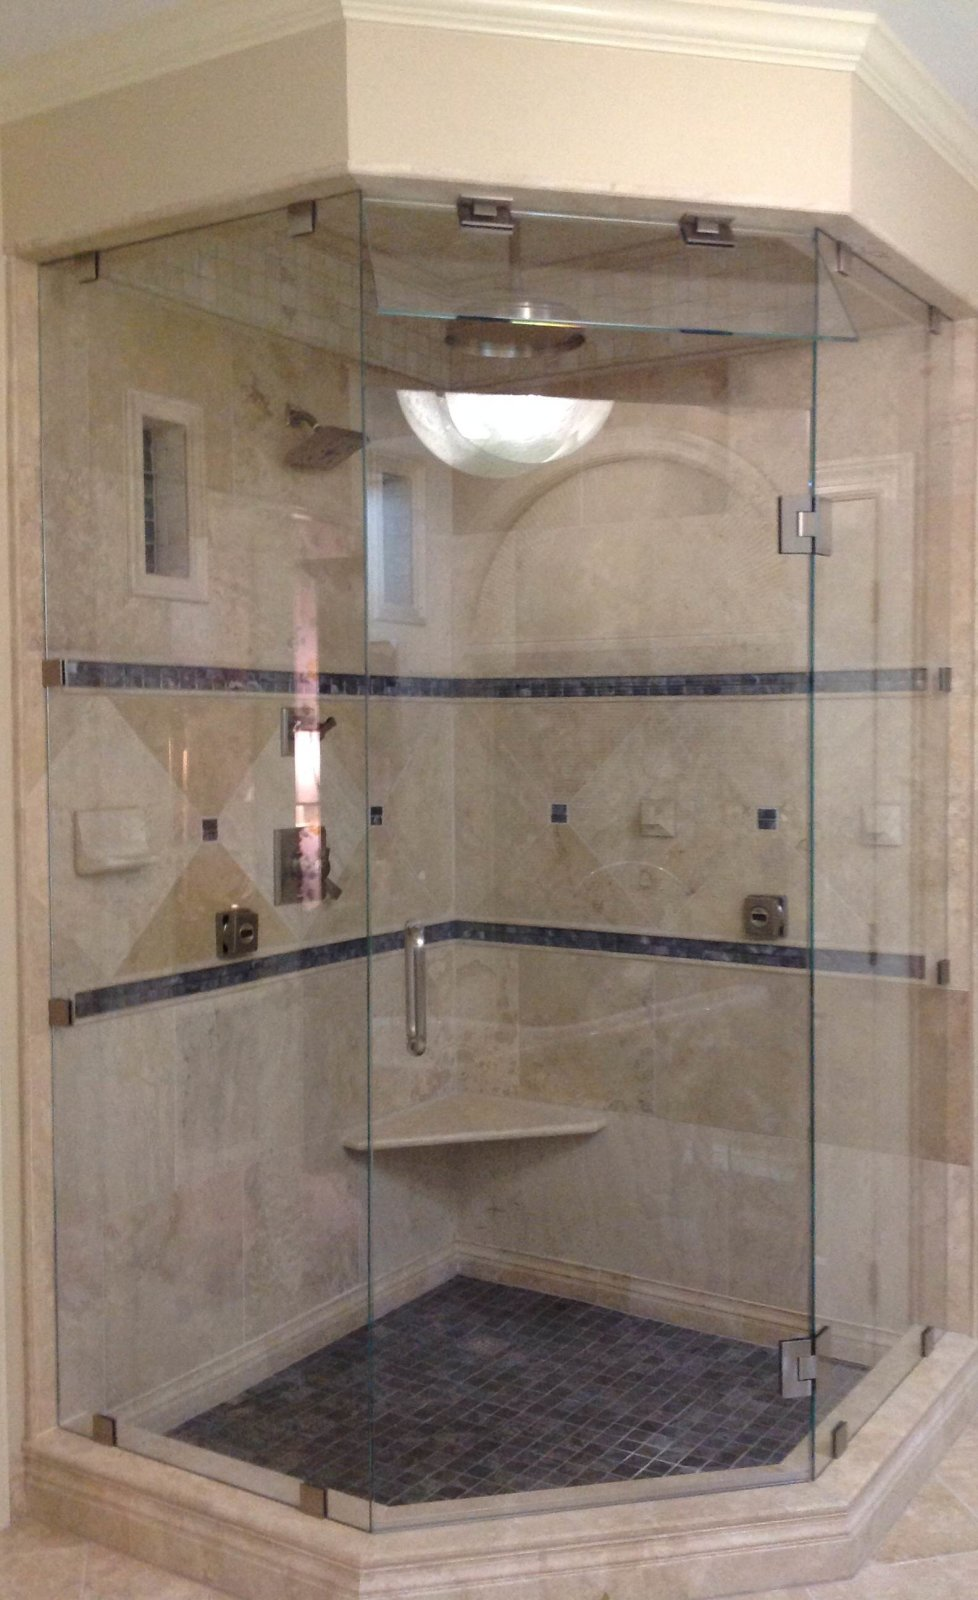 Gallery of frameless showers as seen on hgtvs love it or list it neo angle steam shower with movable transom eventelaan Images